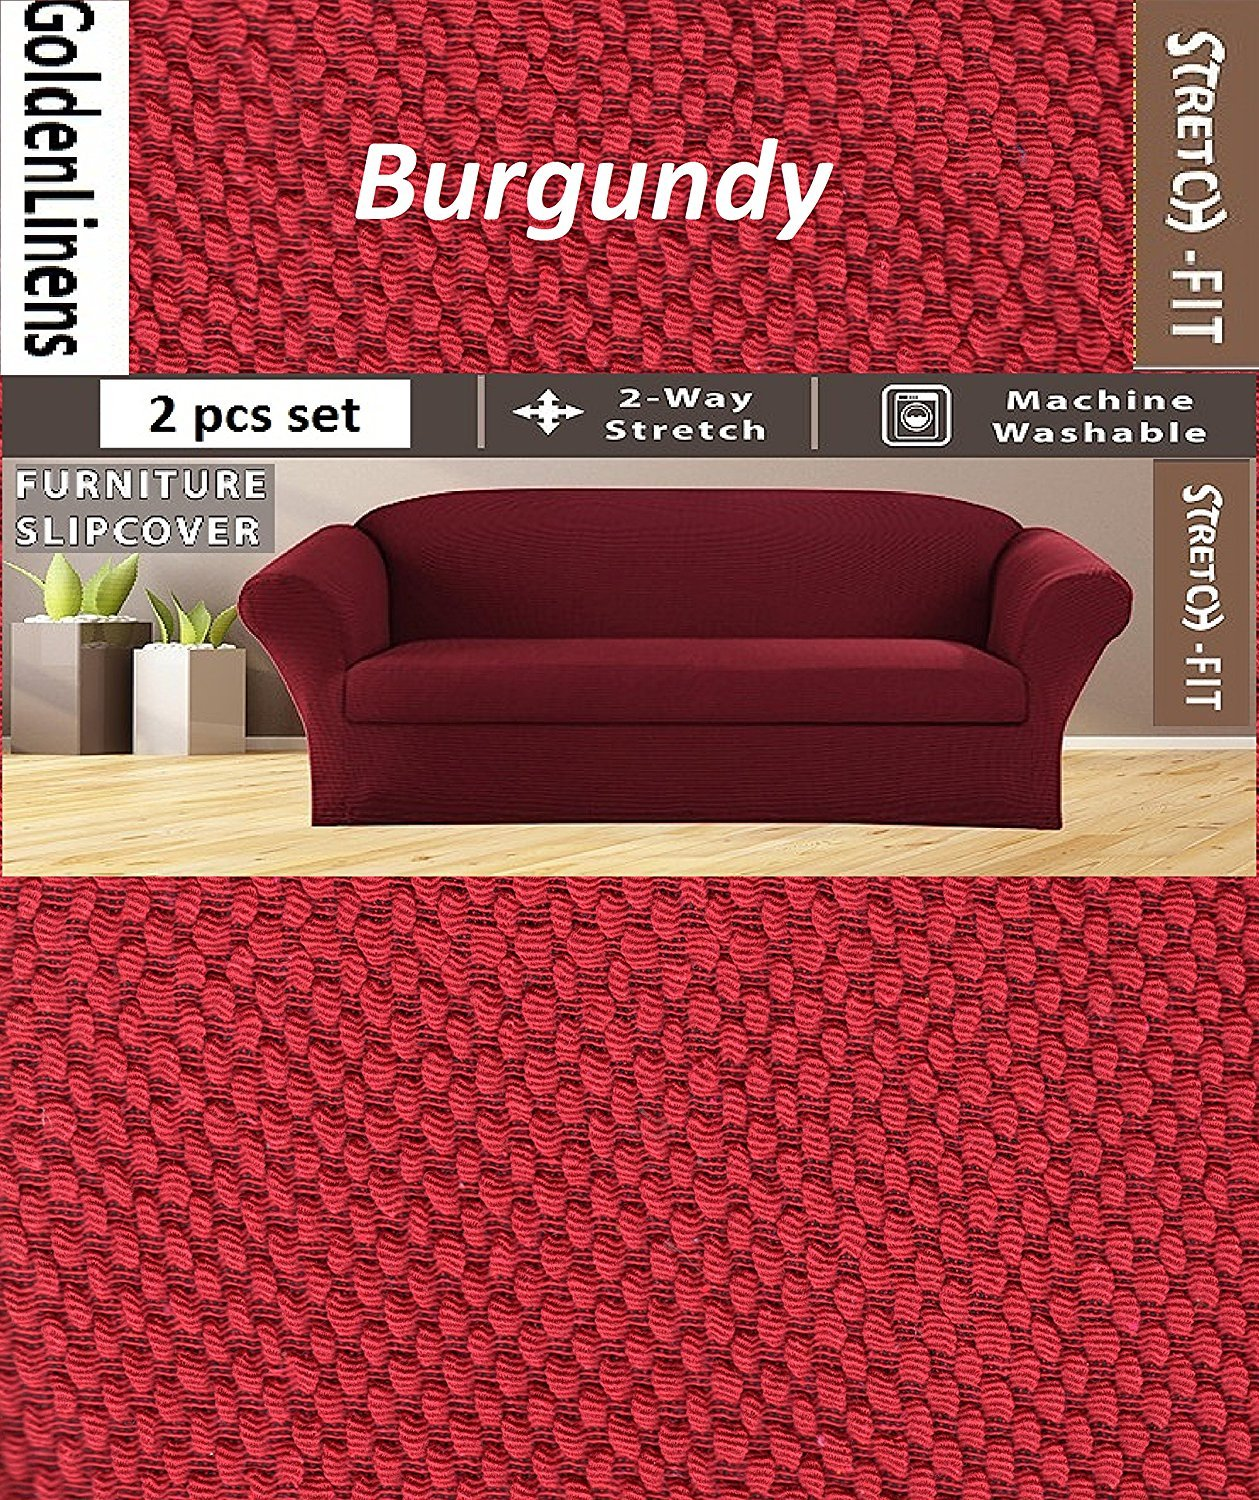 E&A LINEN STRETCH FORM FIT - 3 Pc. Slipcovers Set, Couch/Sofa Loveseat Chair Covers (BURGUNDY) E&A LINEN CORP.